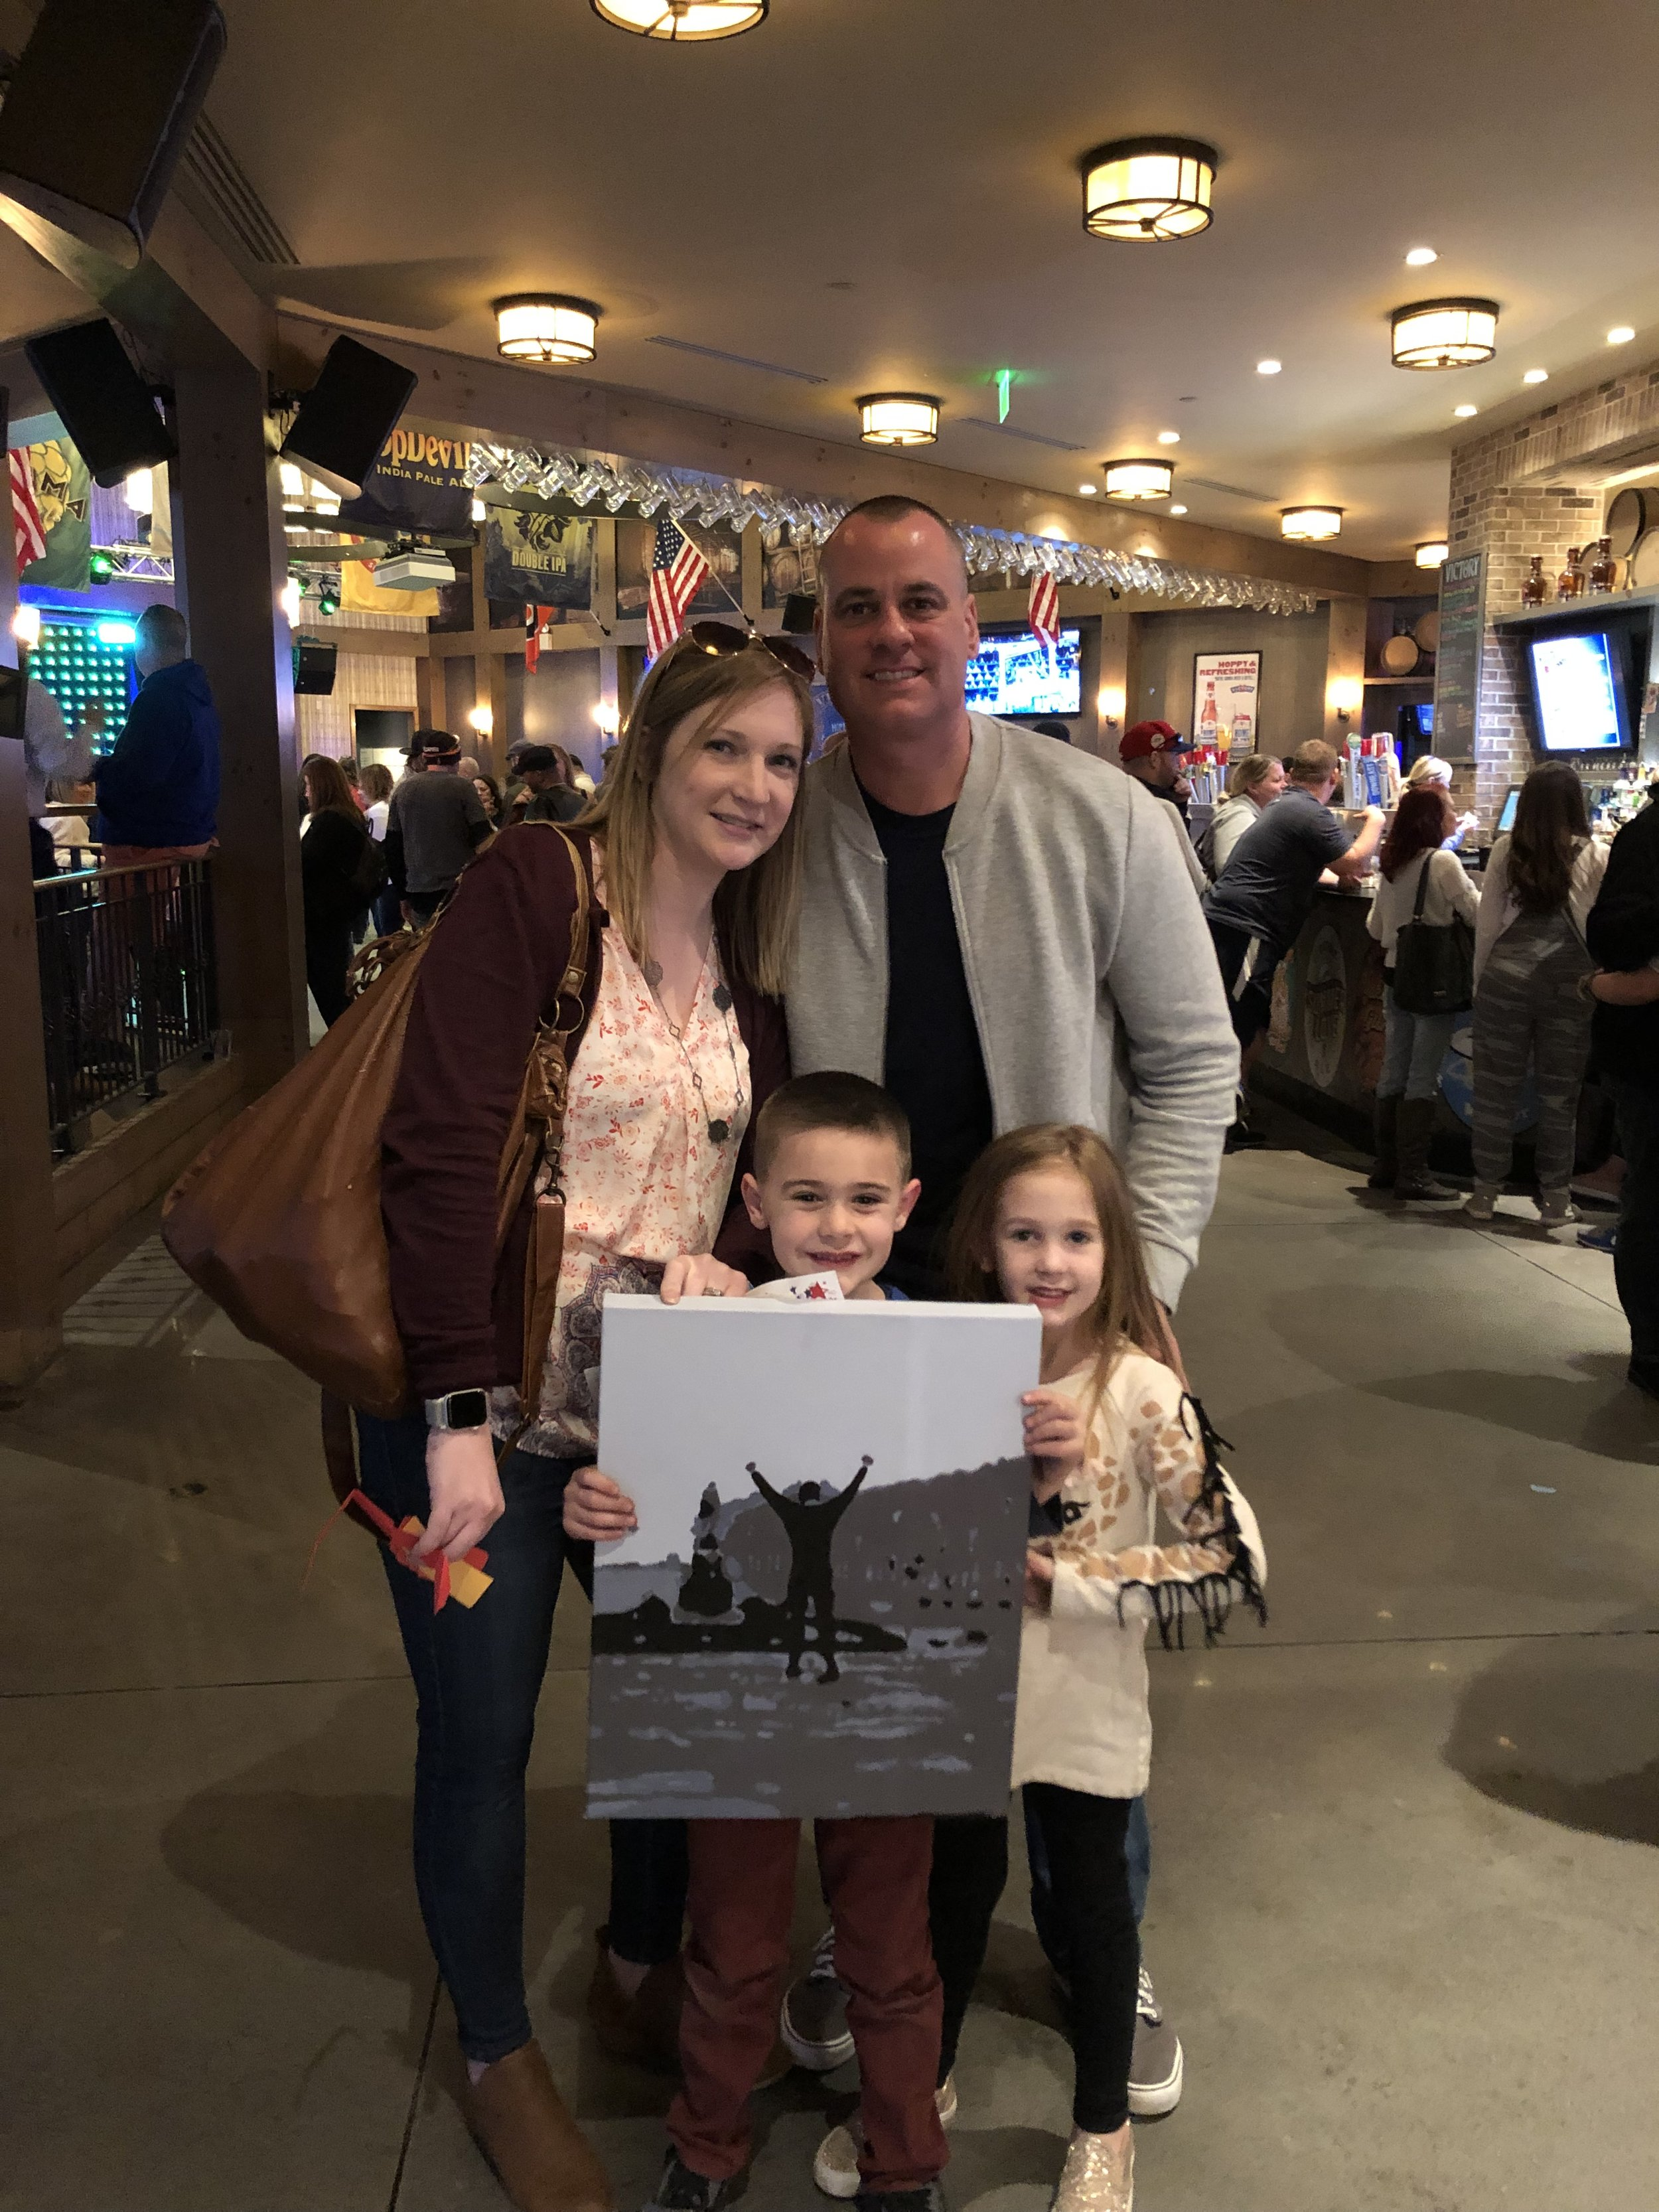 The Malone family won a custom Rocky painting by Kate Conway